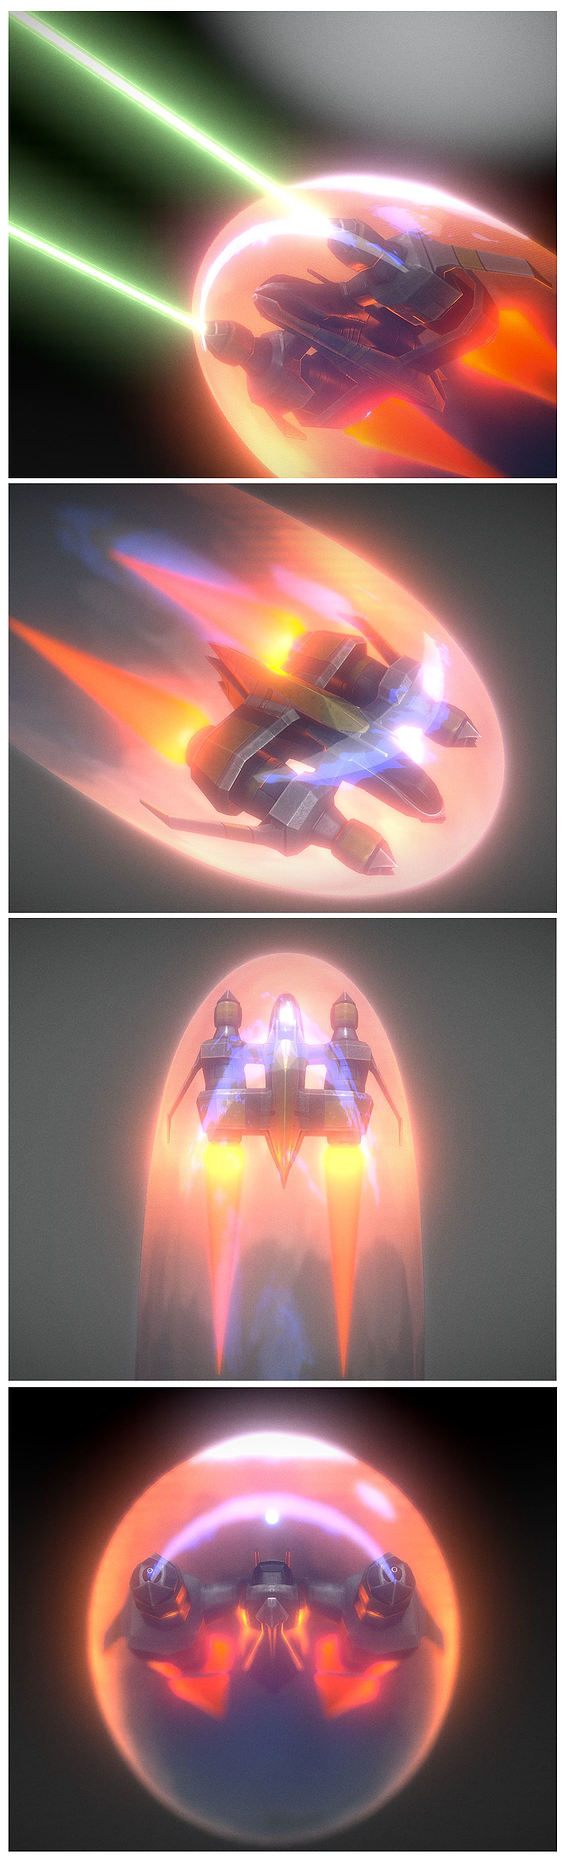 Low-Poly Star Fighter Spacecraft with Shield and Laser Animation